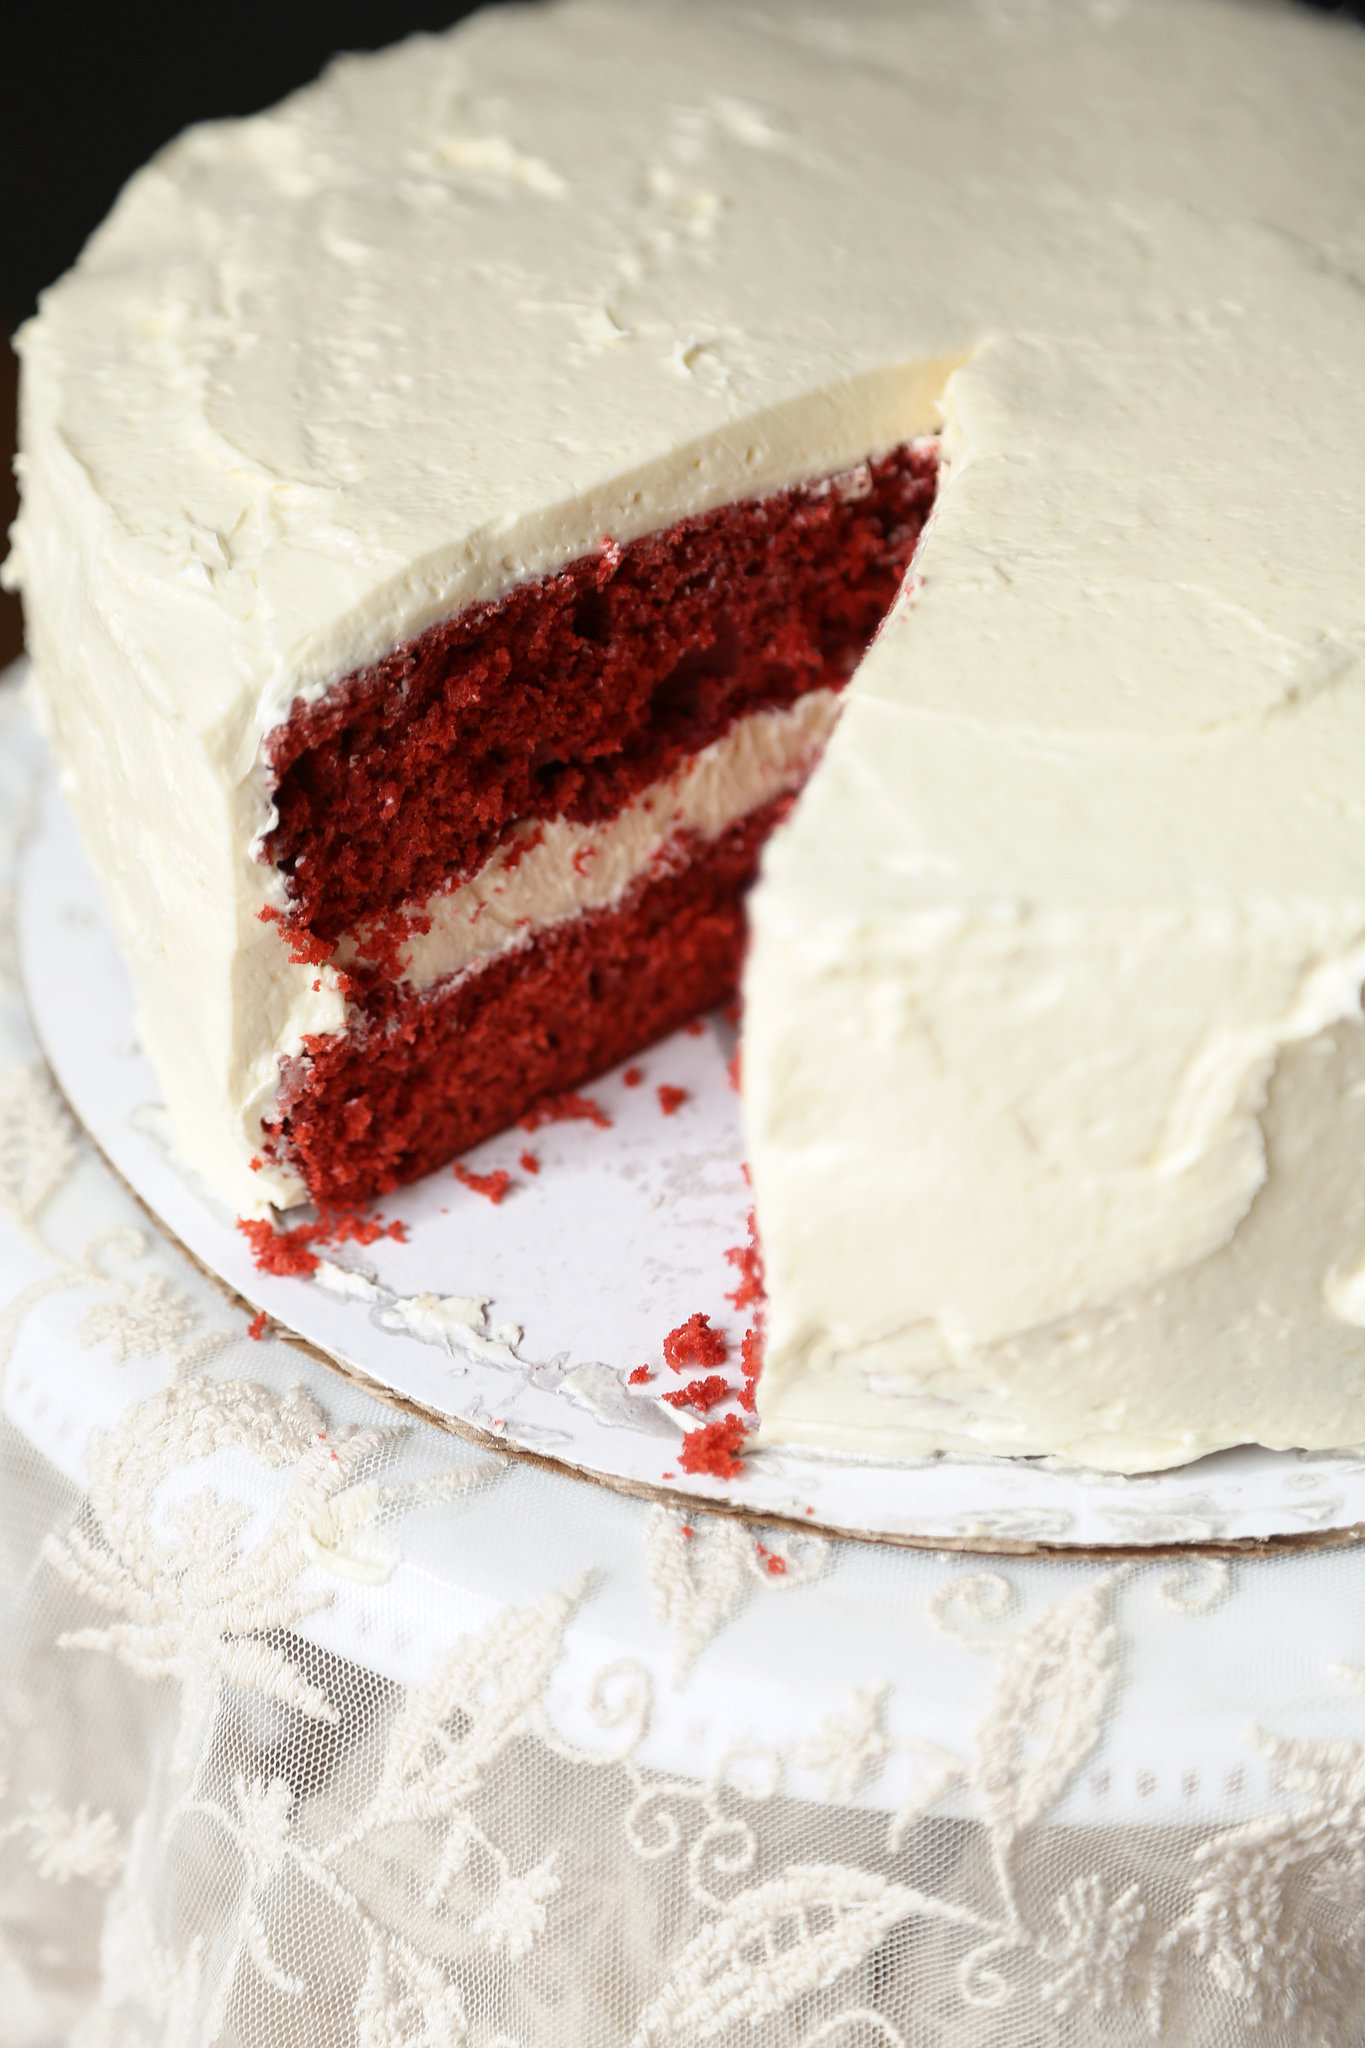 icing a red velvet cake is very red velvet cake a red velvet cake ...